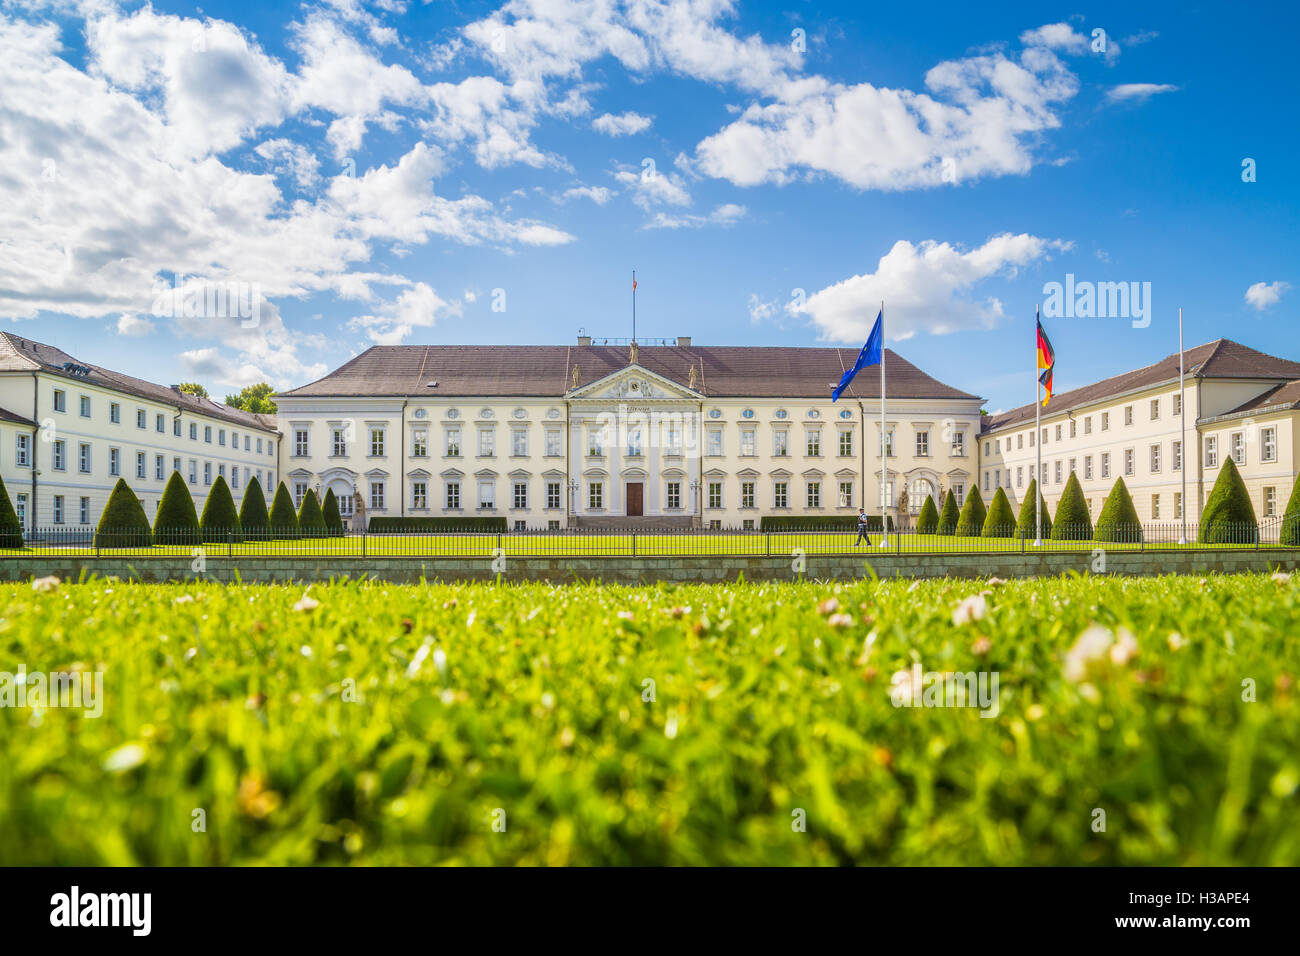 Classic view of famous Schloss Bellevue, the official residence of the President of the Republic of Germany, in - Stock Image